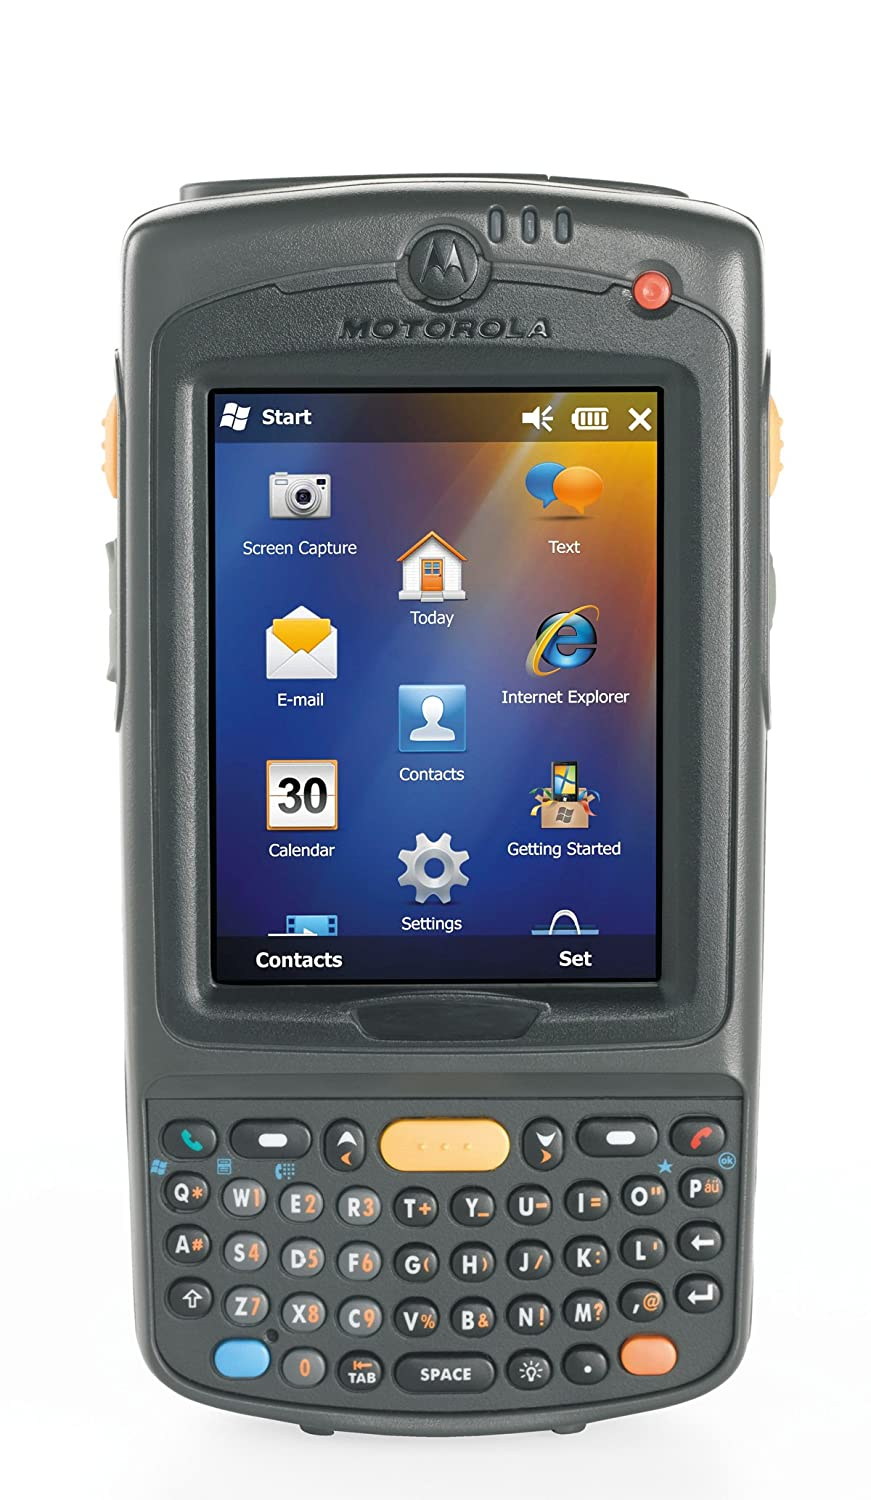 Motorola MC75A Barcode Scanner Wi Fi 802.11a b g 2D Imager Scanner Windows Mobile 6.5 MC75A0 P30SWRQA9WR